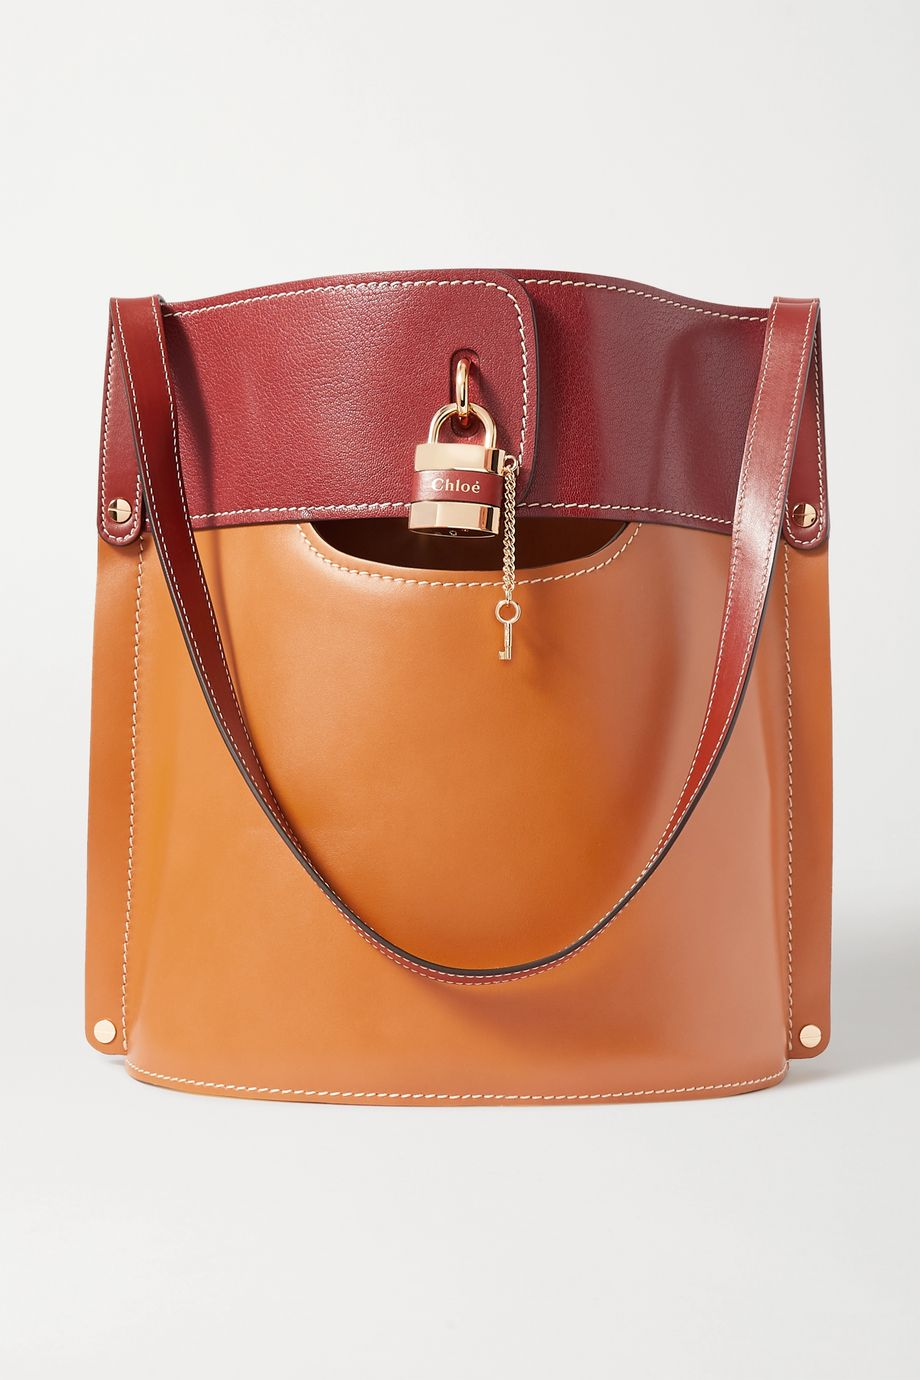 Chloé Aby two-tone leather tote